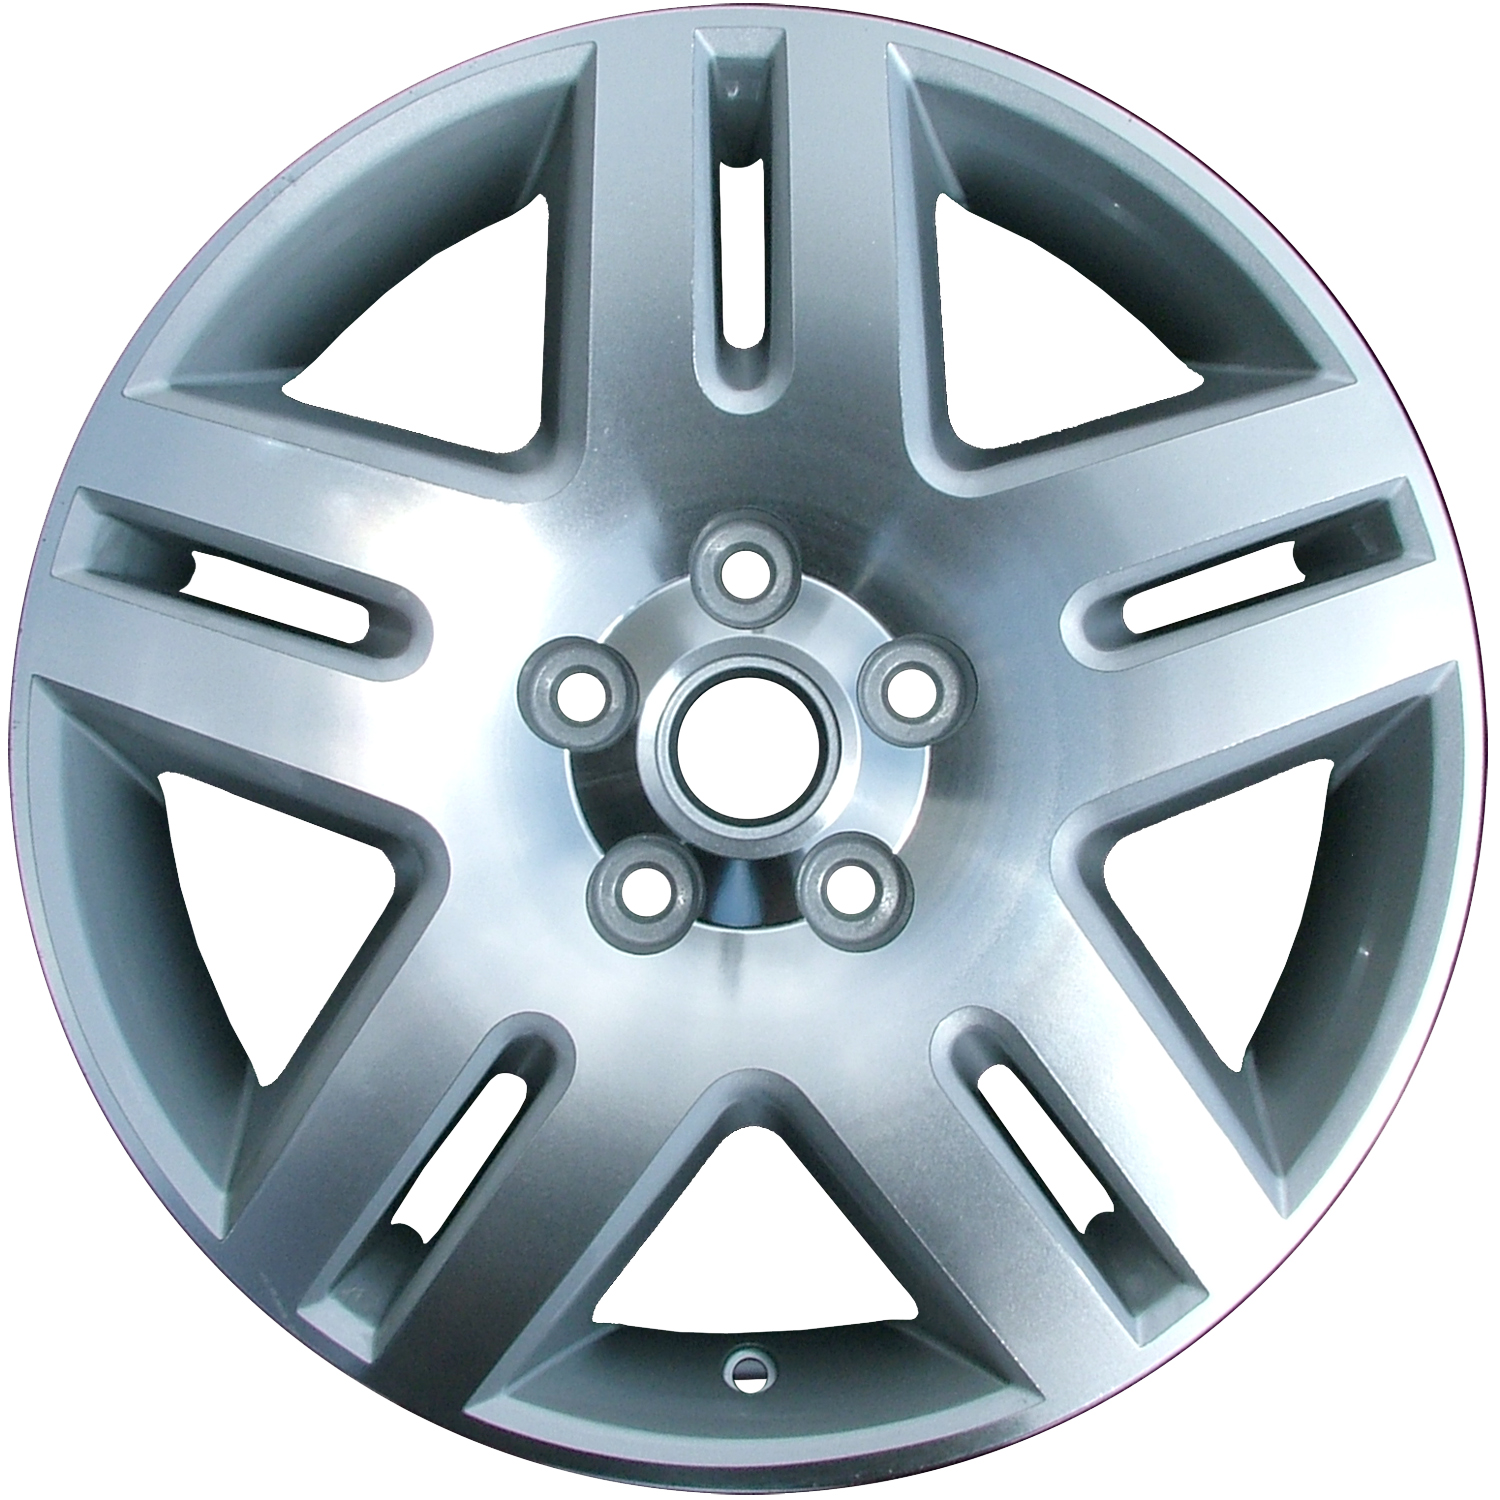 2006-2016 Chevrolet Impala  17x6.5 Alloy Wheel, Rim Sparkle Silver Painted with Machined Face - 5071